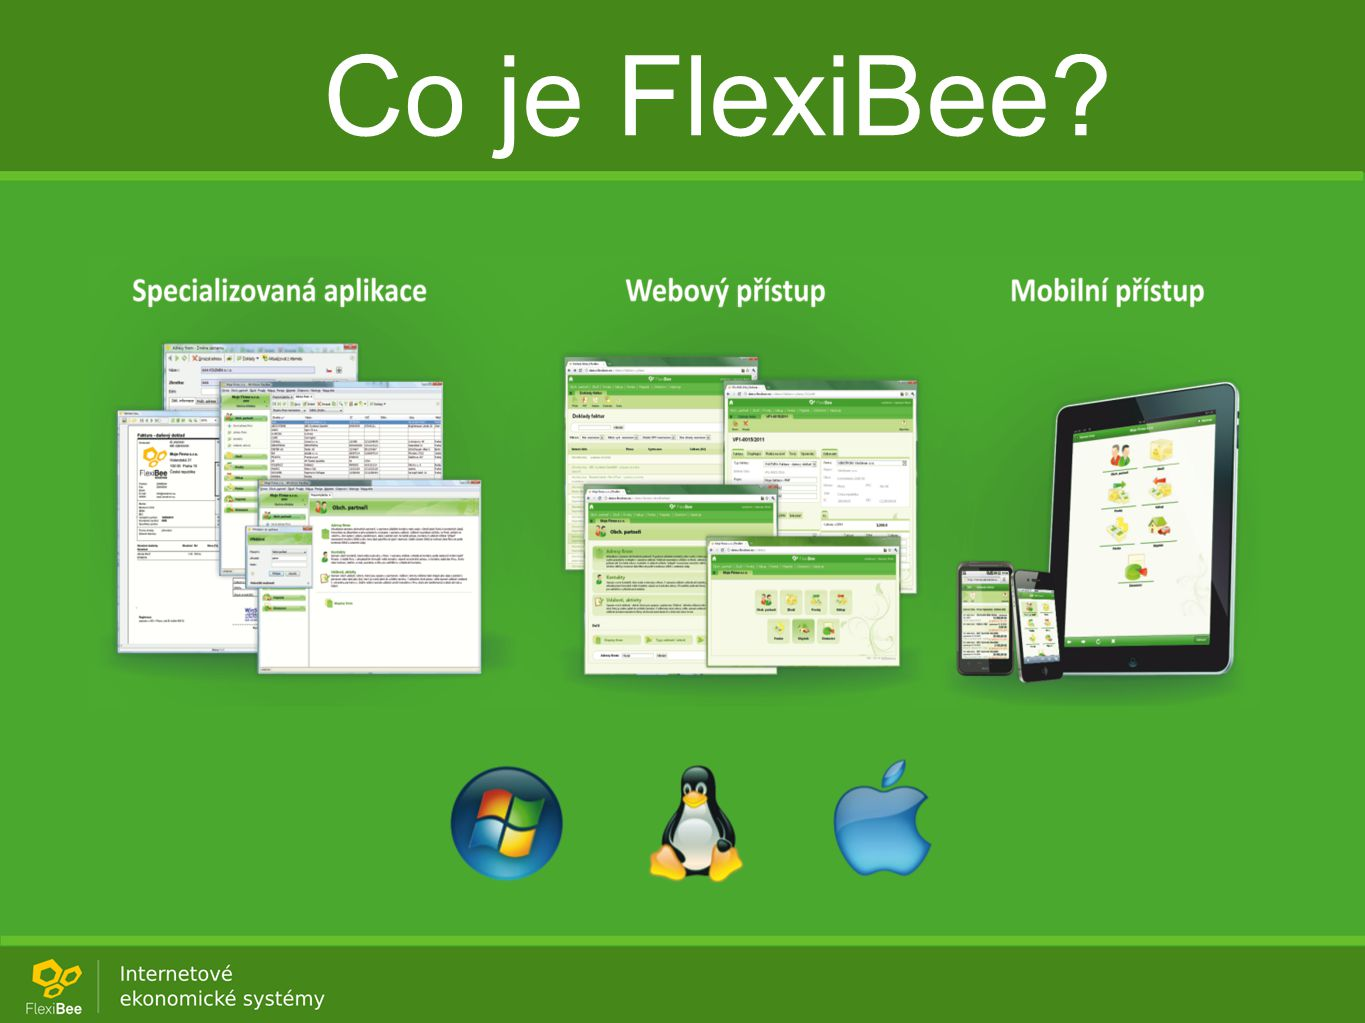 Co je FlexiBee